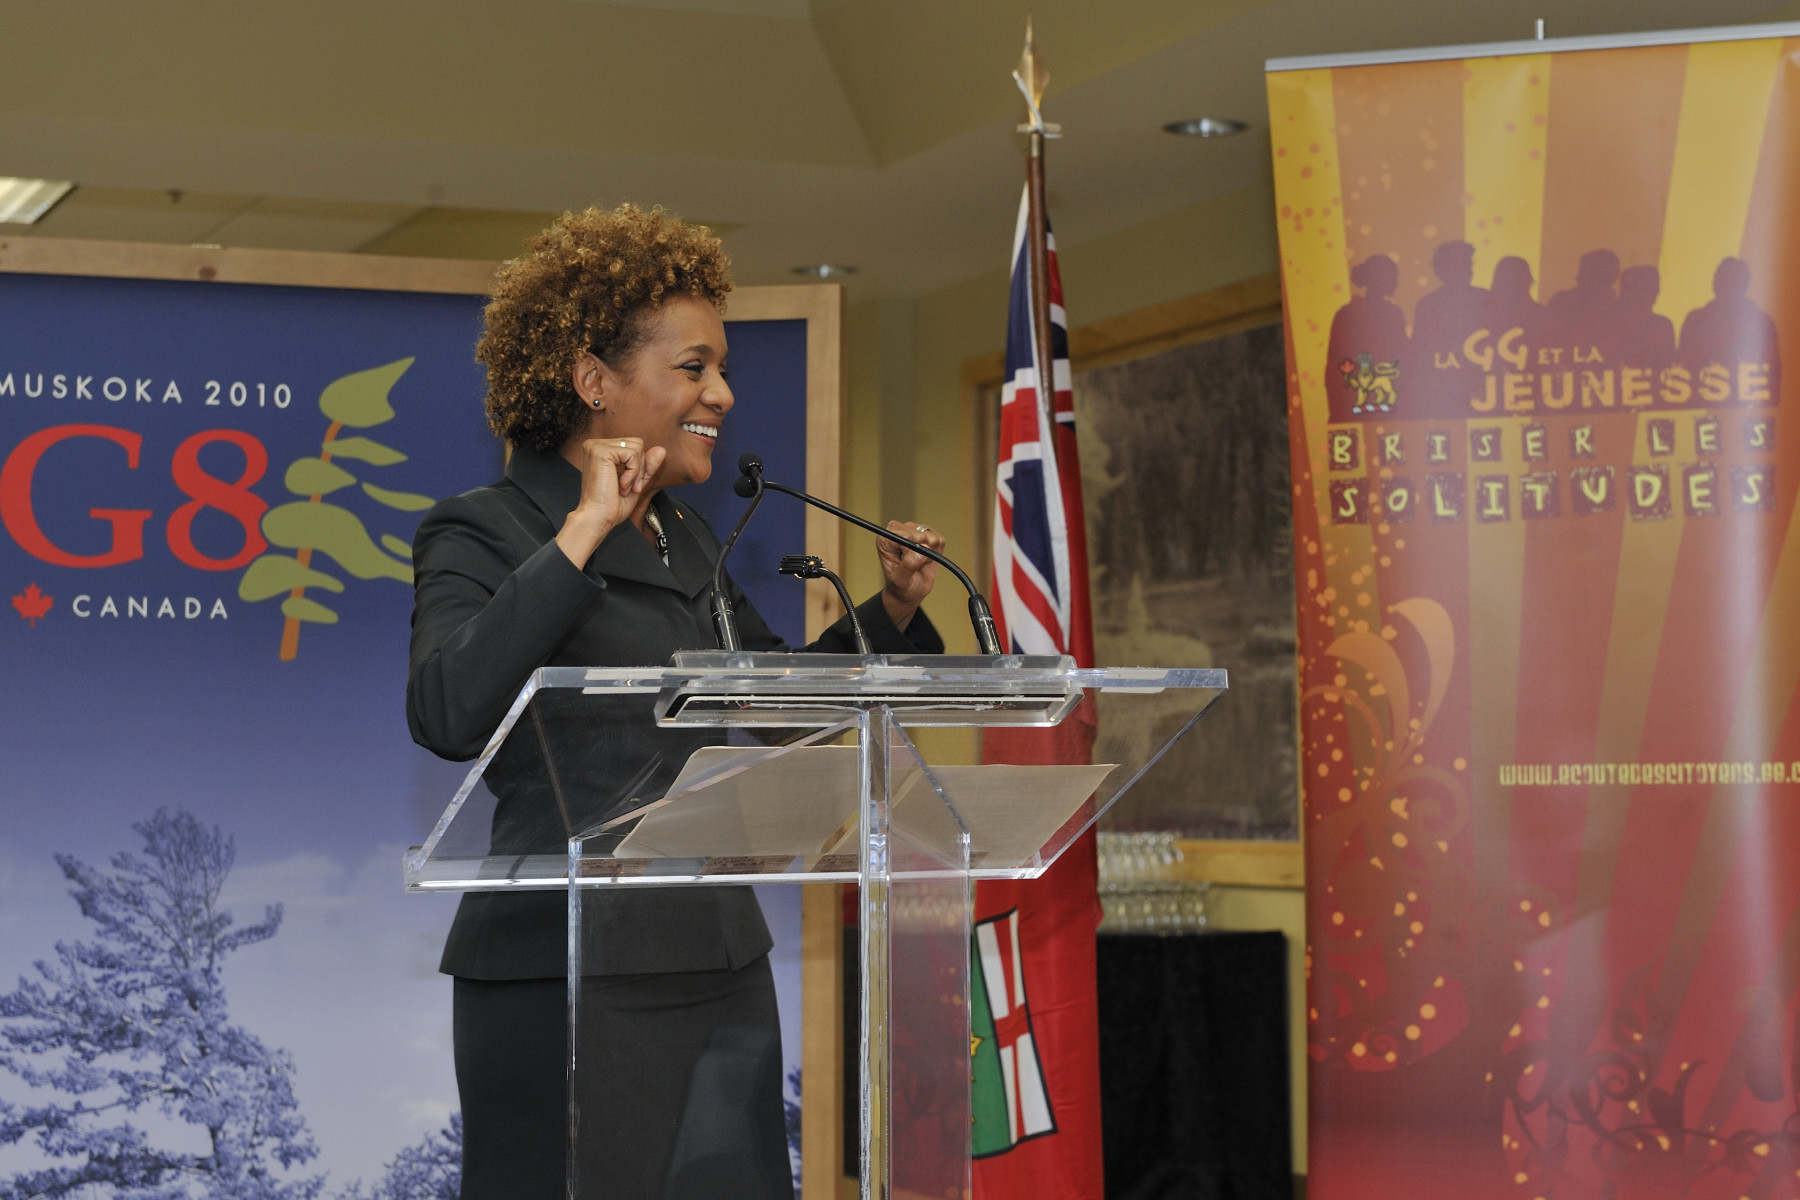 The Governor General concluded her day by going to the University of Waterloo campus in Huntsville to meet with youth leaders from G-8 countries participating in My Summit 2010.